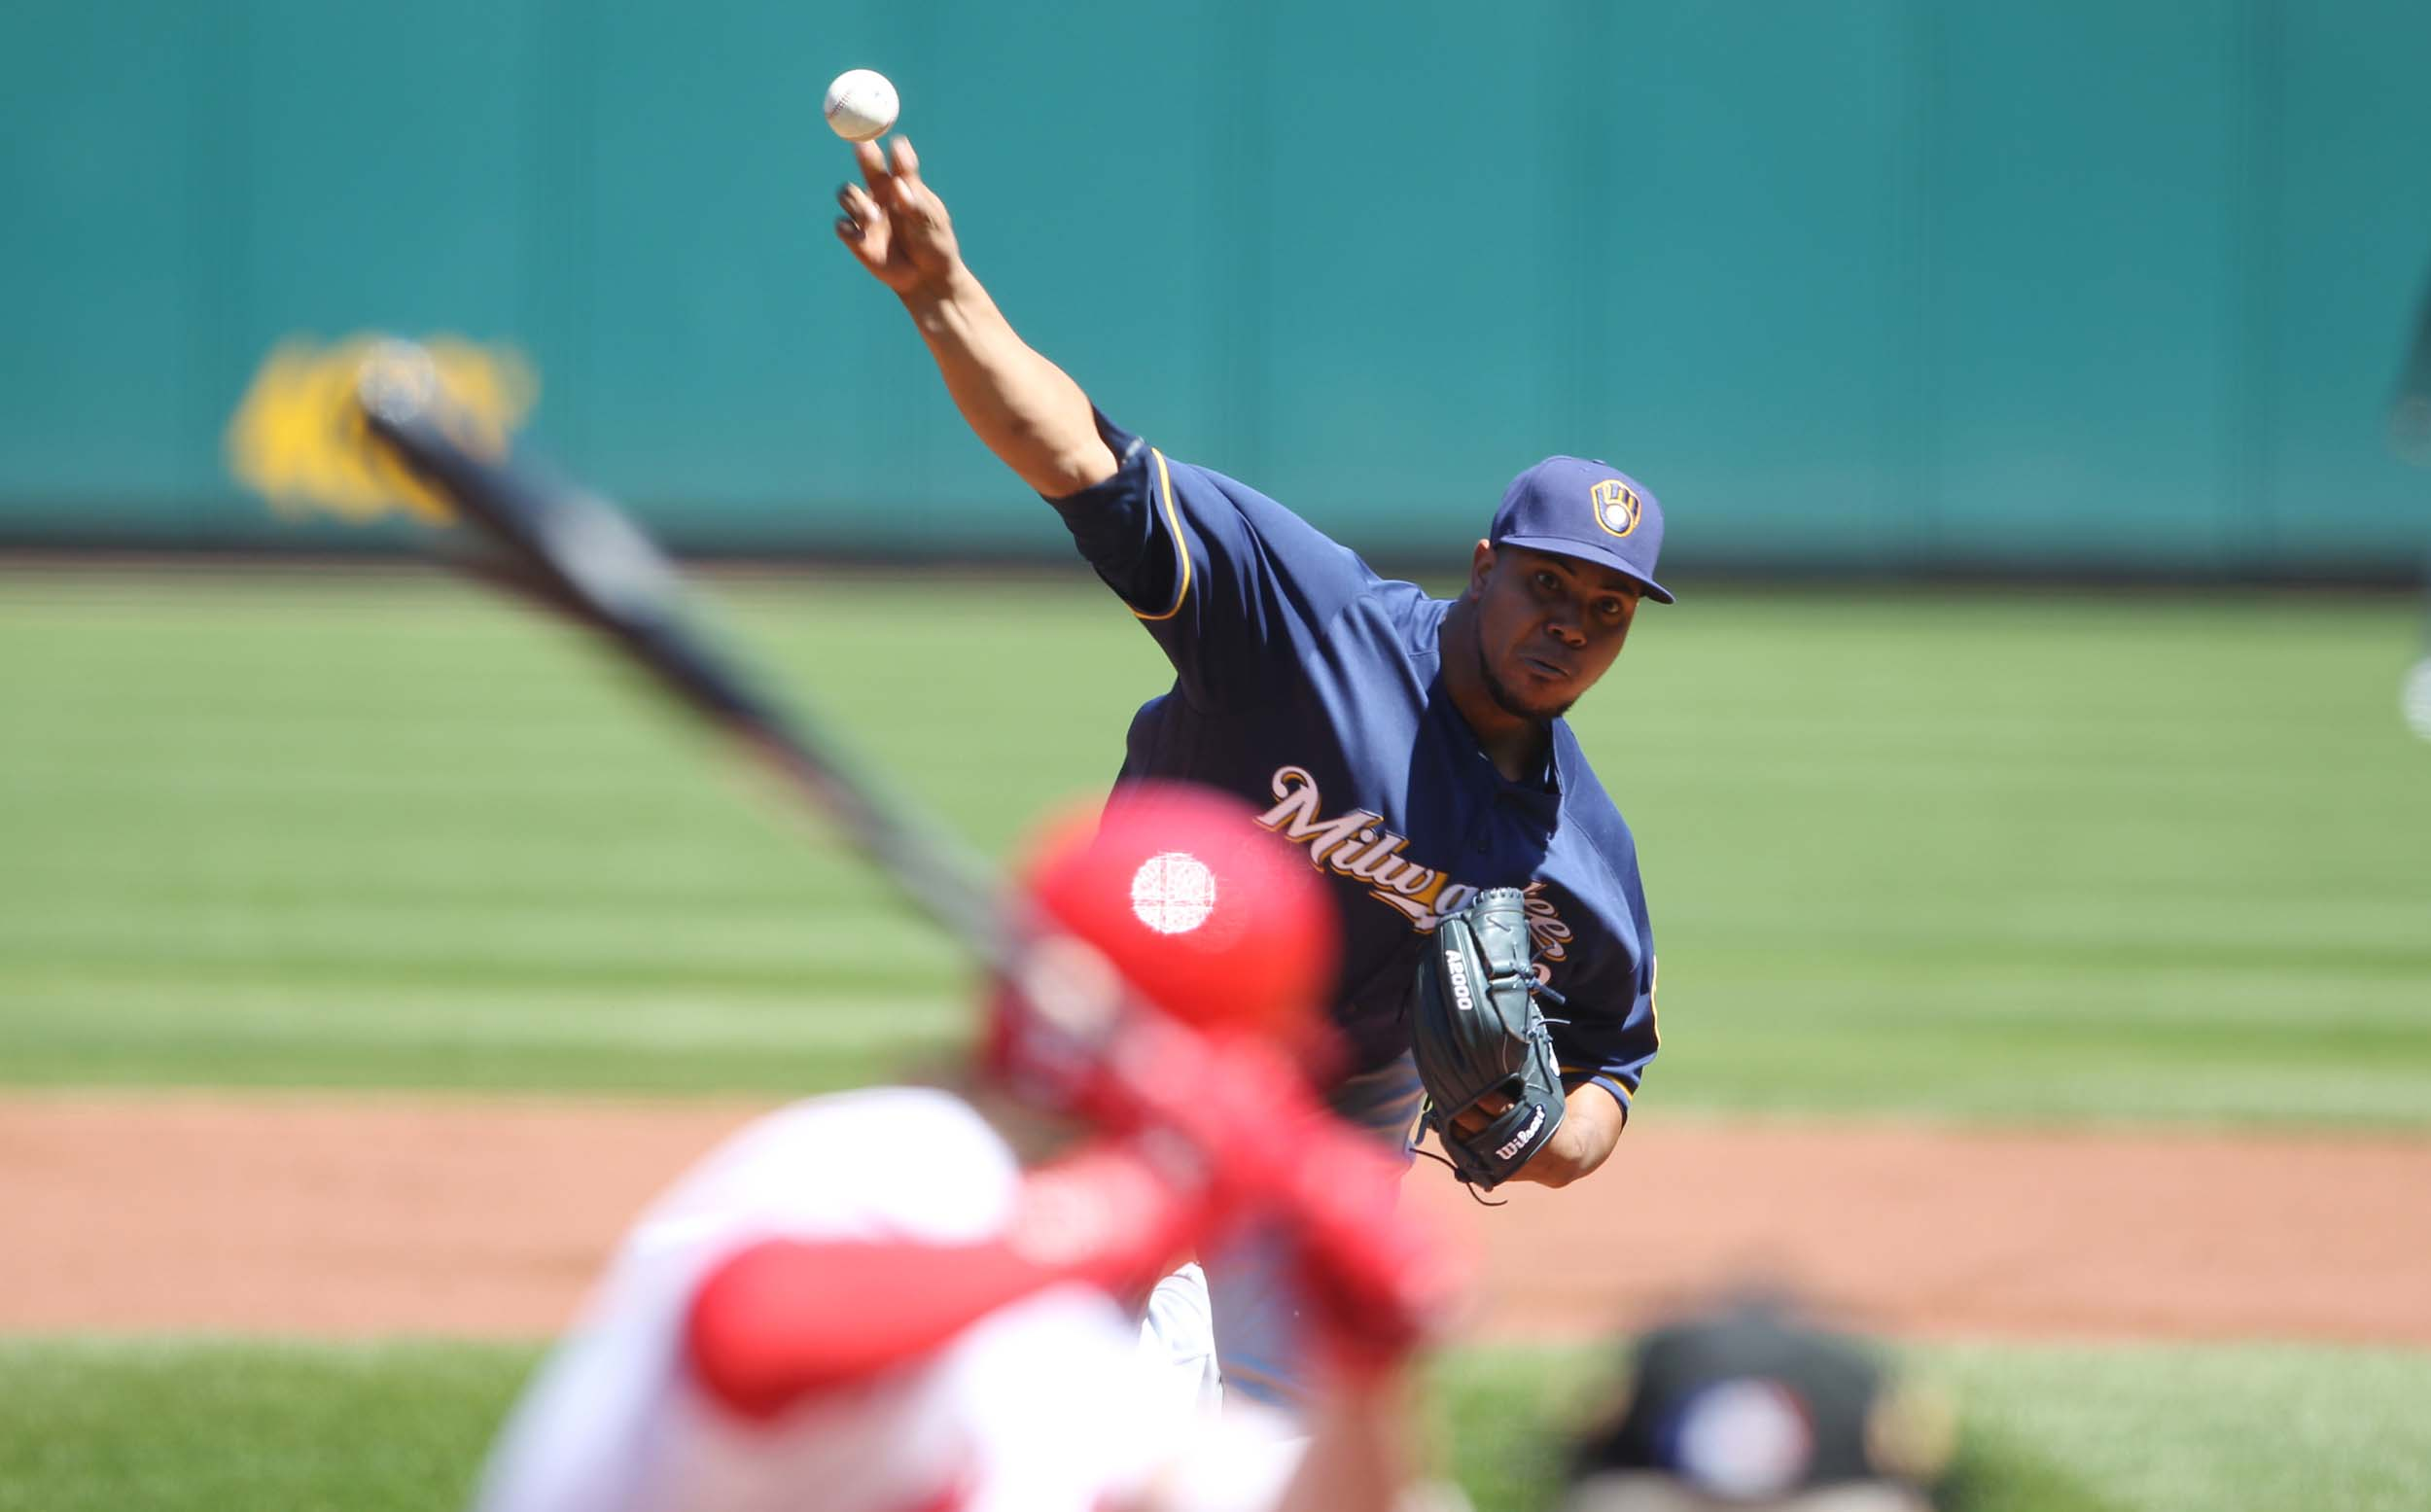 Peralta leads Brewers to first win of the season